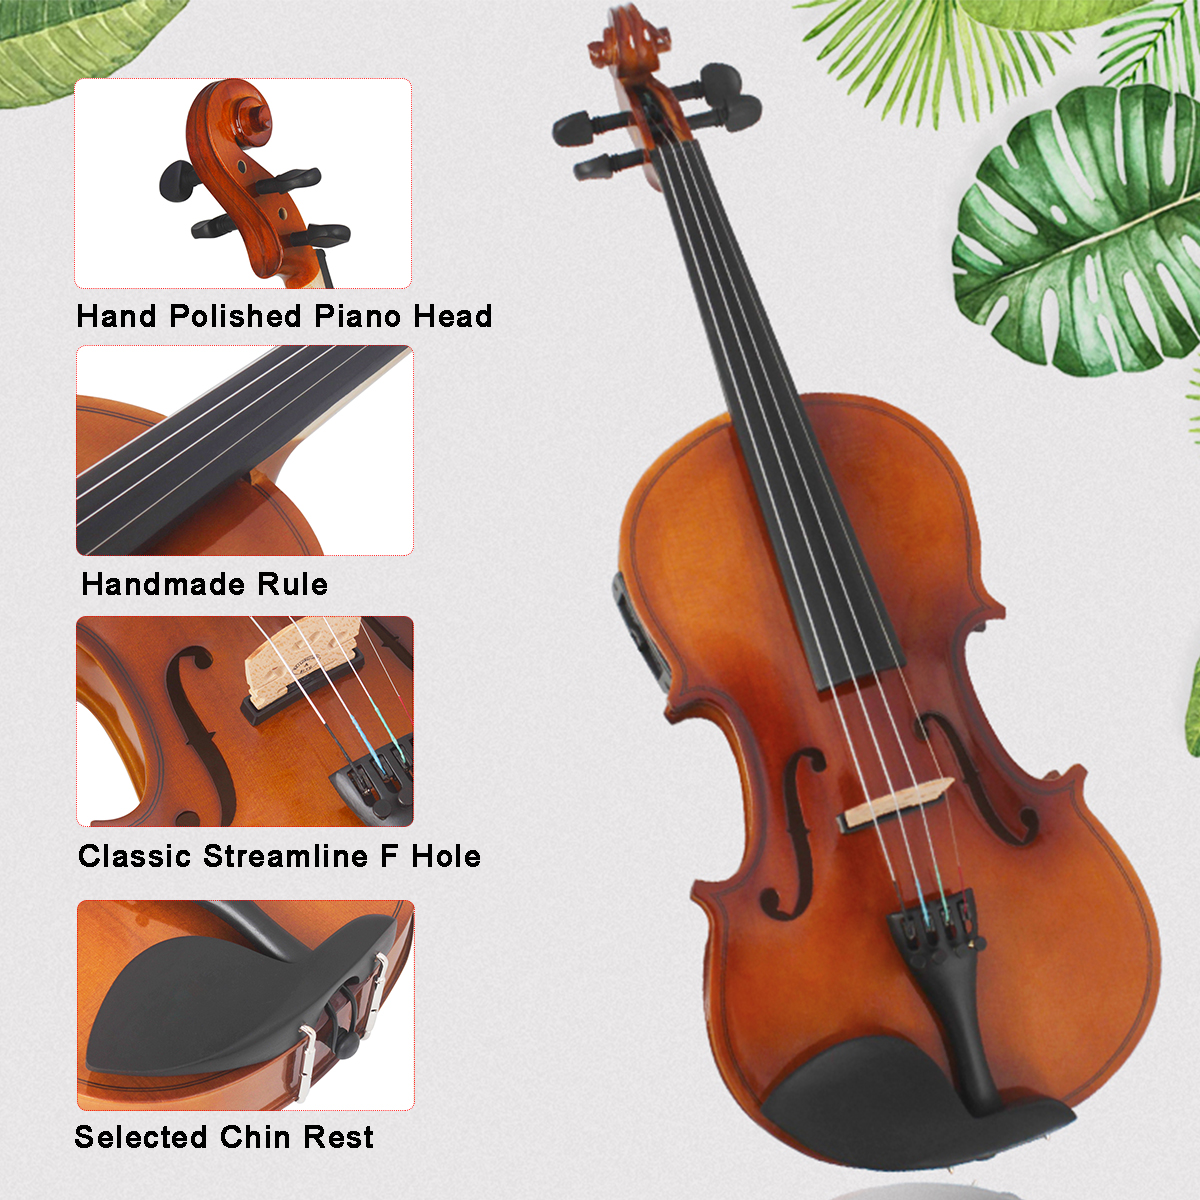 Astonvilla 4/4 Solid Wood Electro-acoustic Violin with Case/Bow/Cloth/Wire/Holder Mount